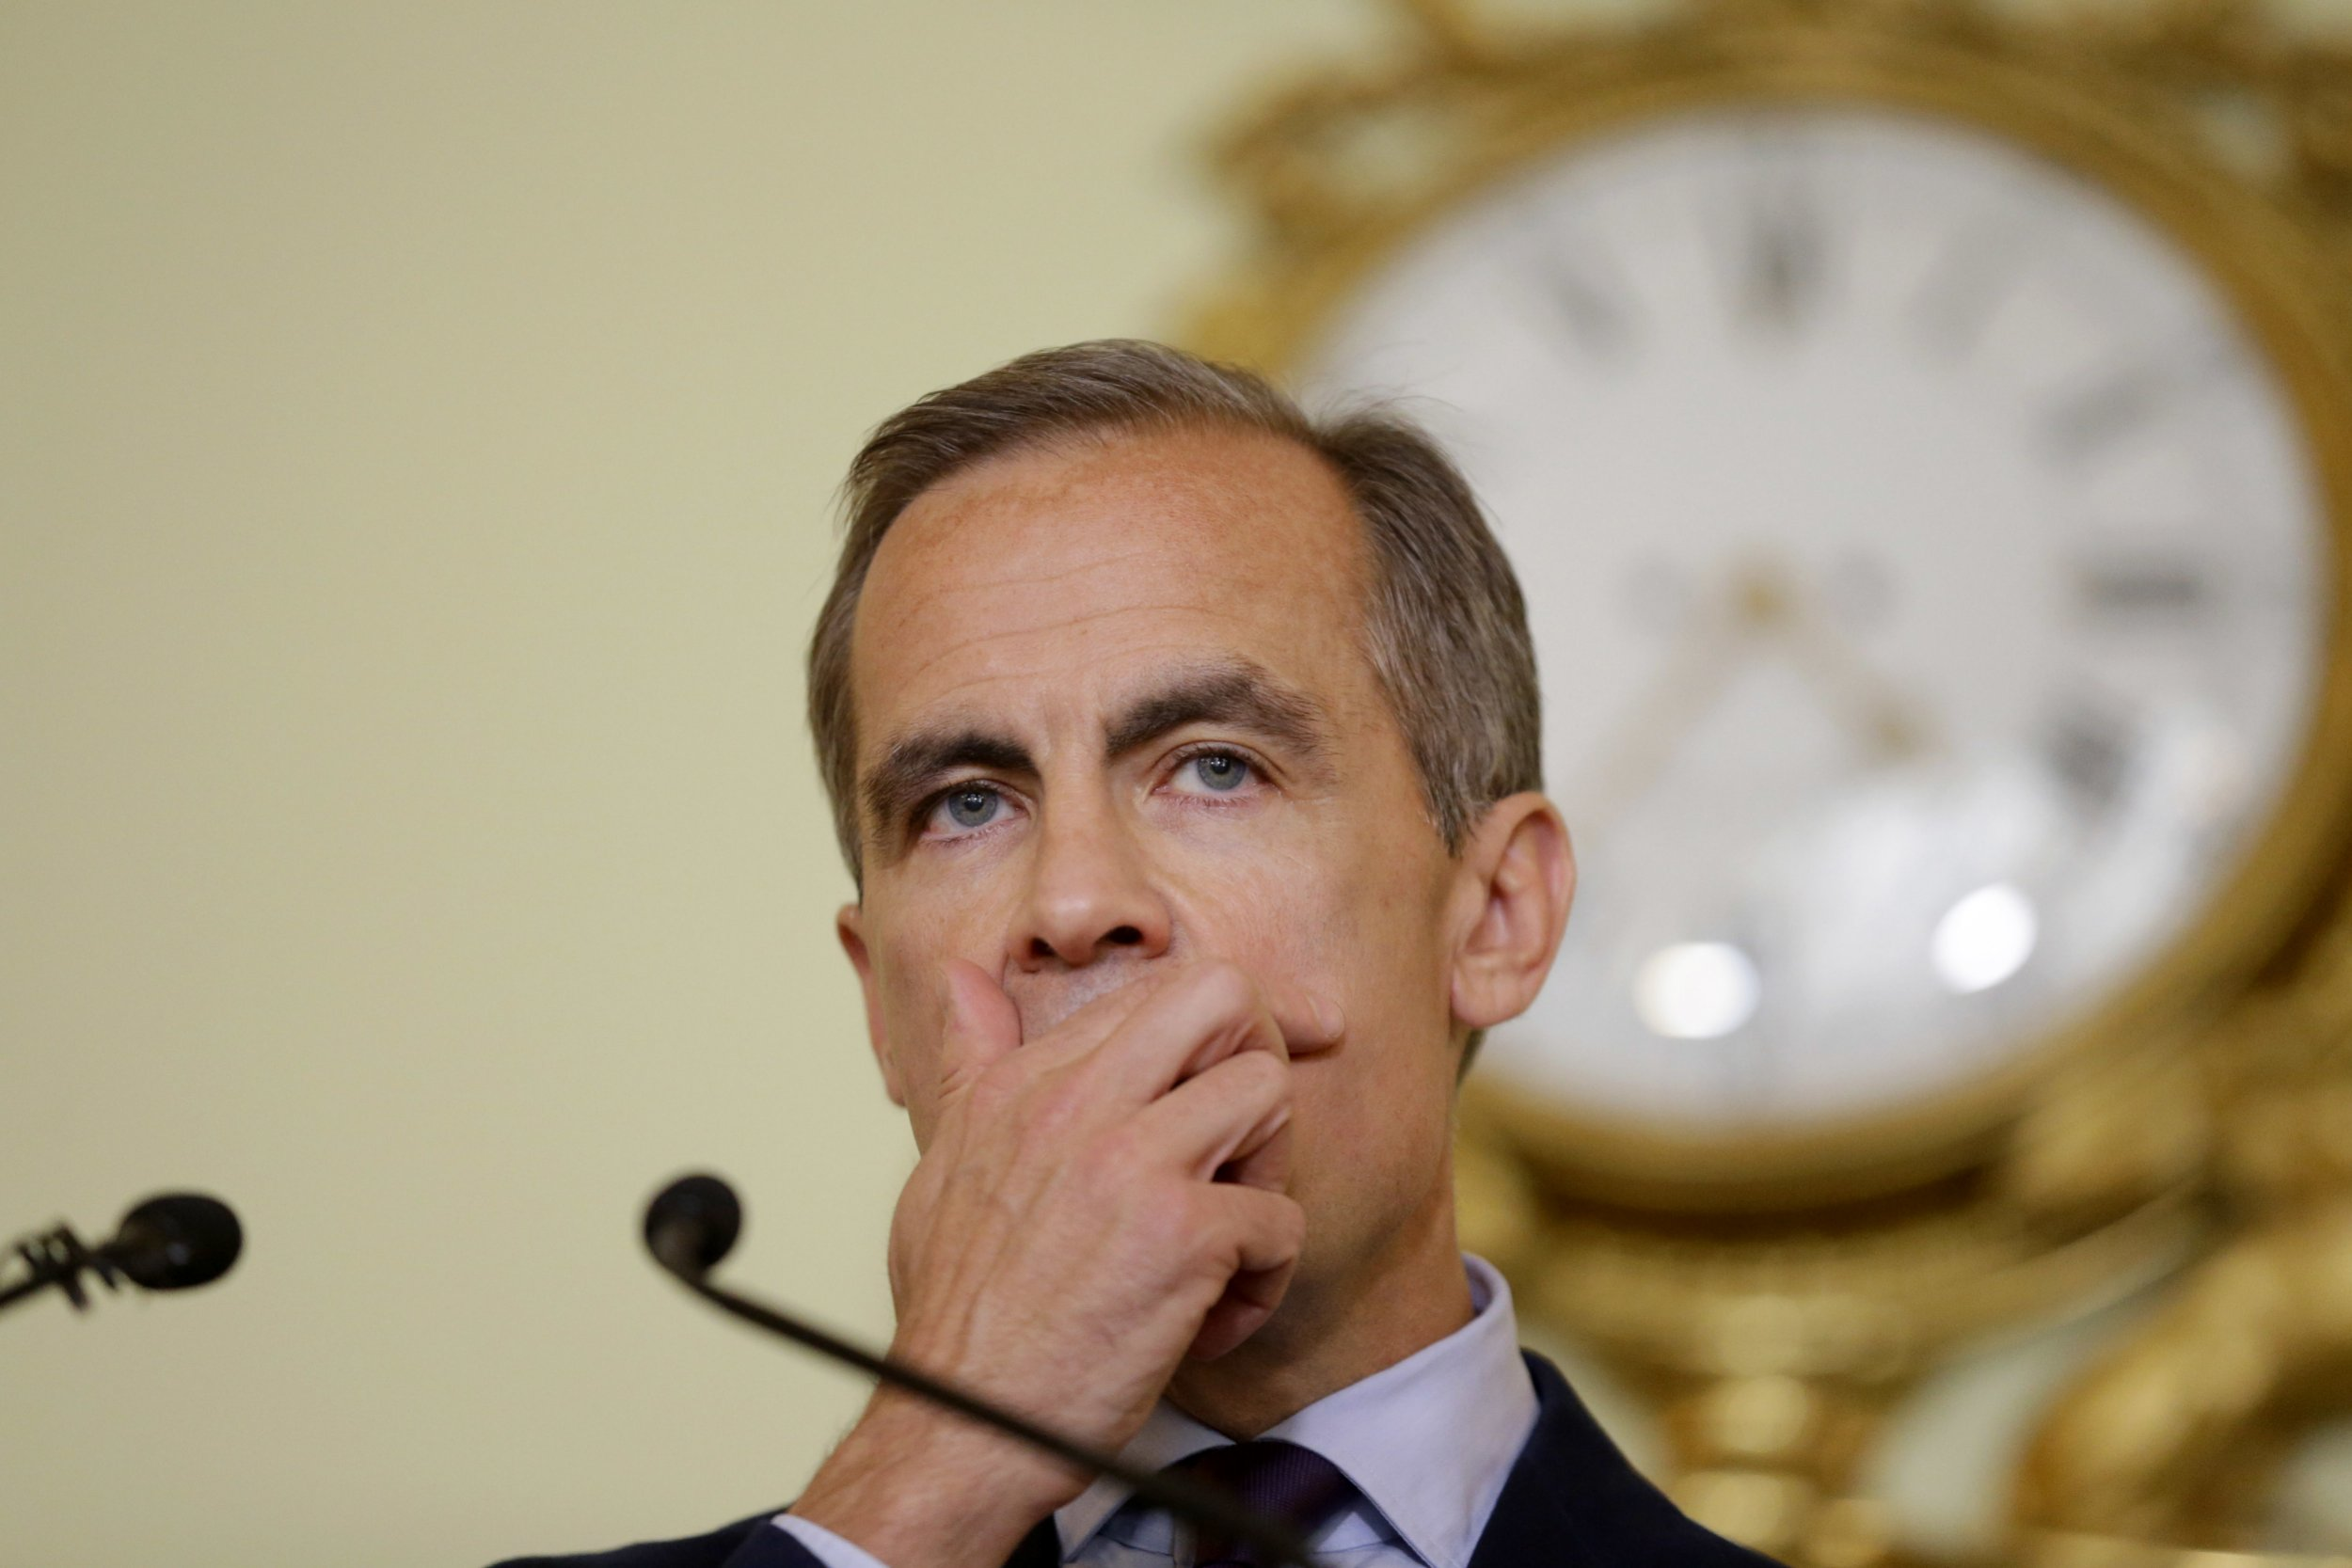 The governor of the Bank of England Mark Carney listens to a question during a press conference, his first since the leave result of the European Union referendum, at the Bank of England in the City of London, Thursday, June 30, 2016. Carney says the uncertainty over Britain's exit from the European Union means the central bank will likely have to provide monetary stimulus this summer. (AP Photo/Matt Dunham, Pool)